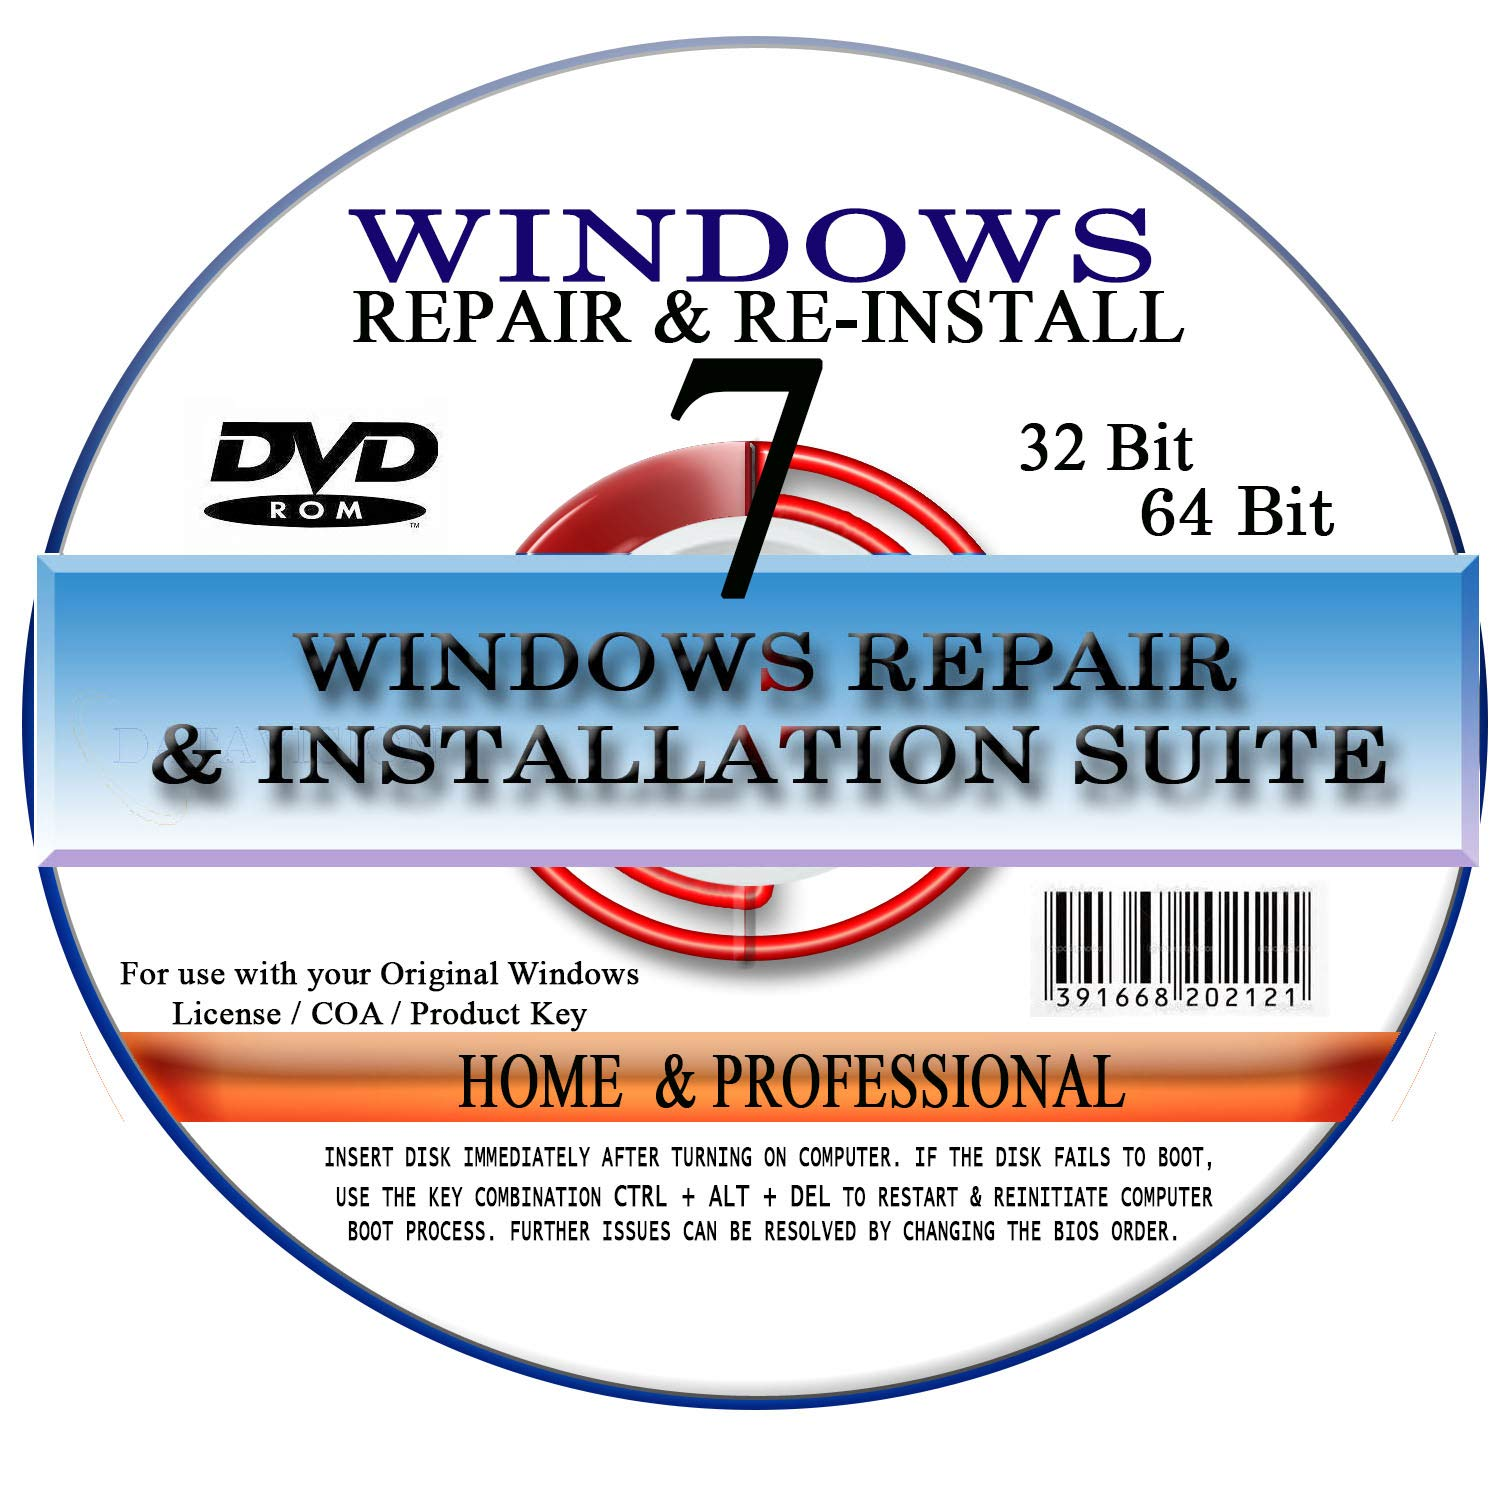 WINDOWS 7 - 64 Bit DVD SP1, Supports Home Premium  Recover, Repair, Restore  or Re-install Windows to Factory Fresh!